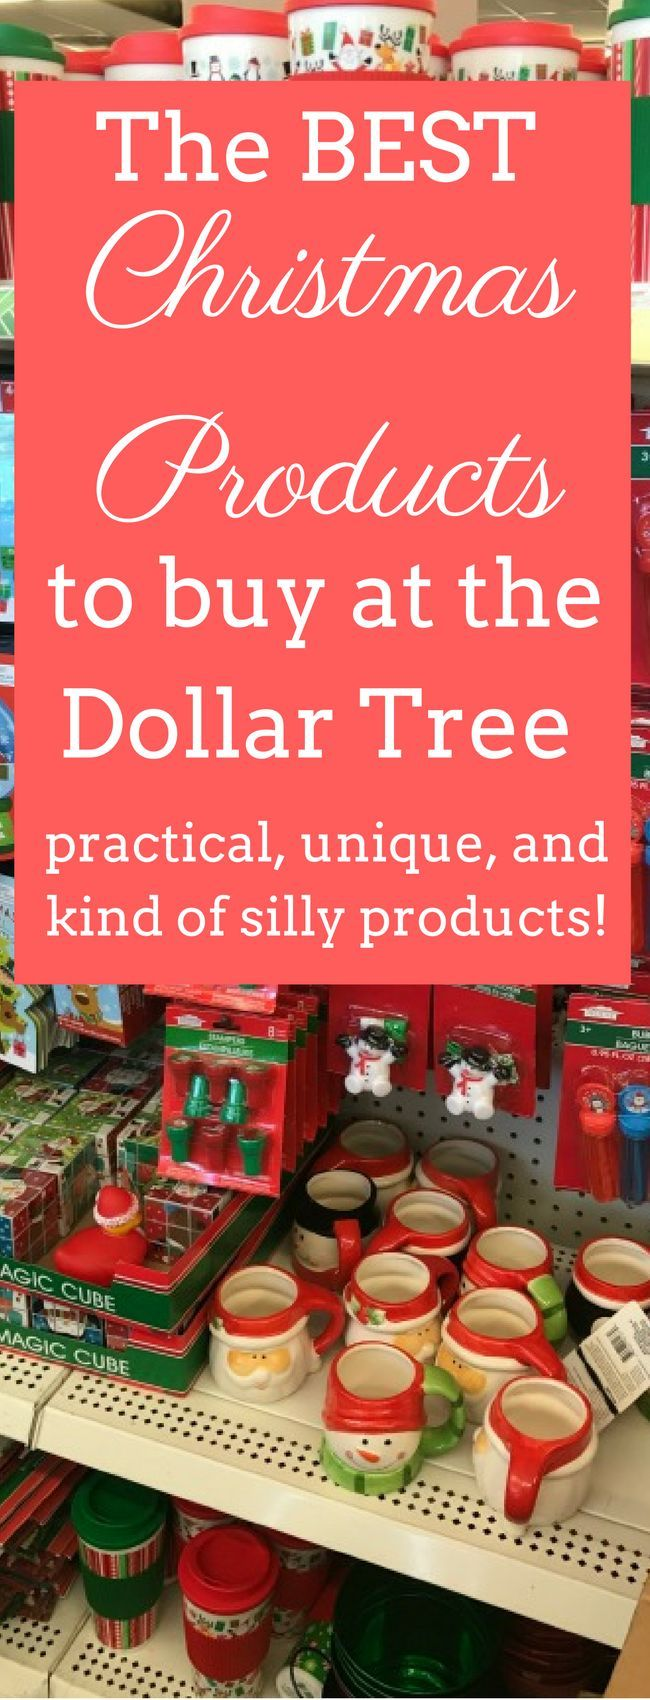 The Best Christmas Products to Buy at The Dollar Tree ...